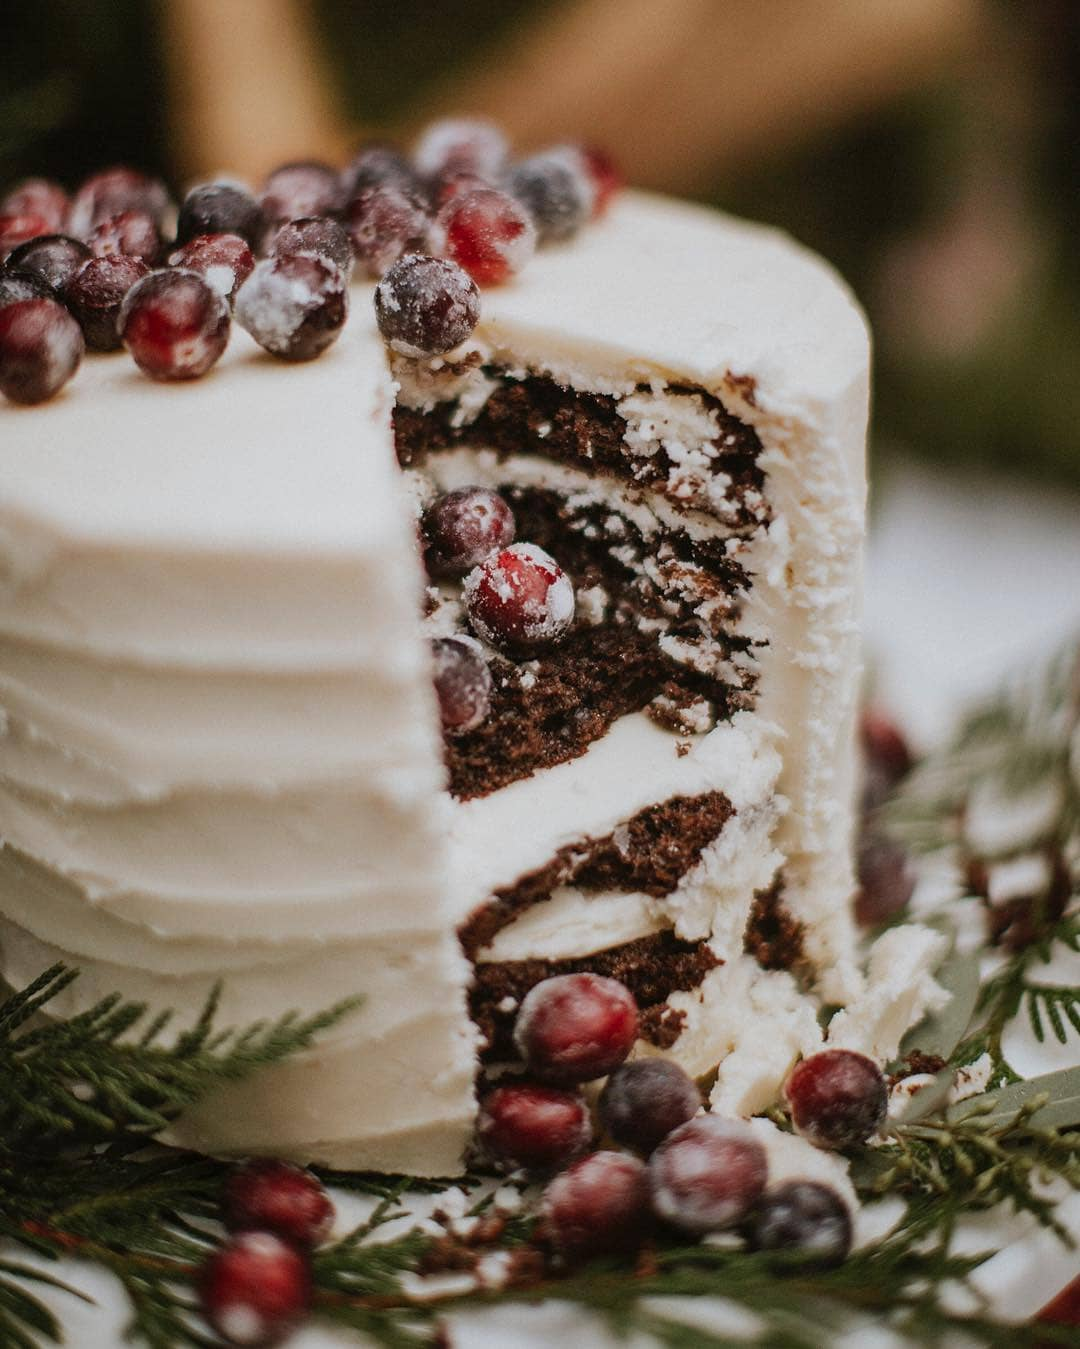 Winter Wedding Cake with Berries